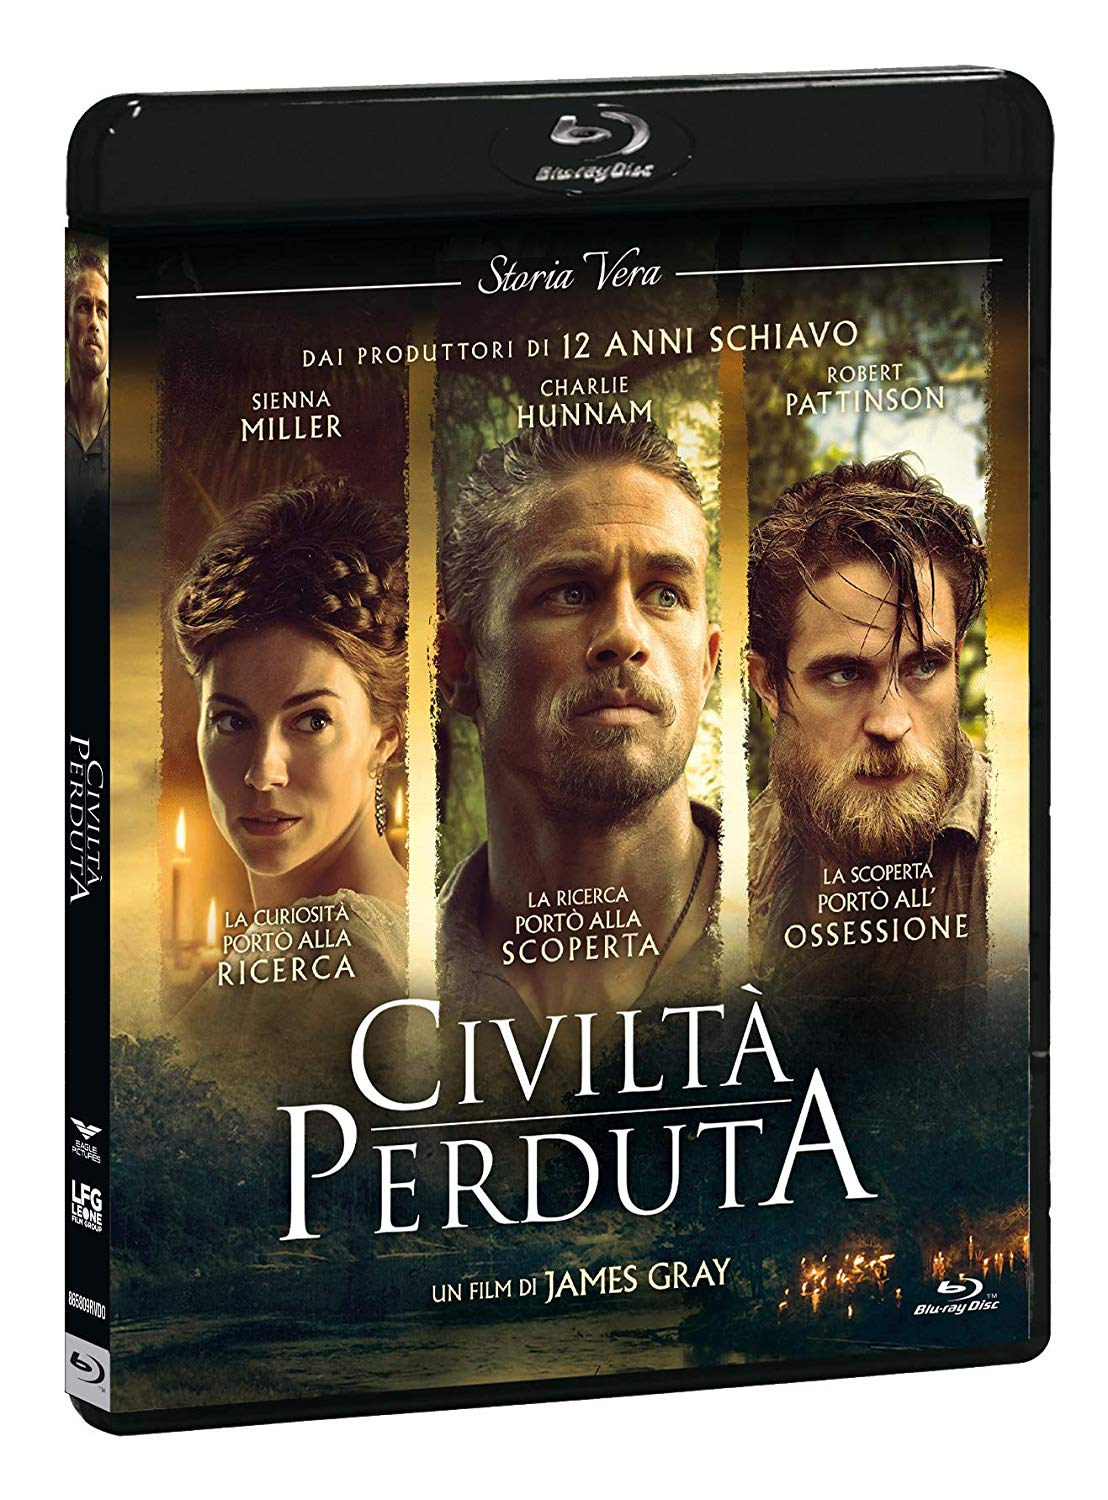 CIVILTA' PERDUTA (BLU-RAY+DVD)